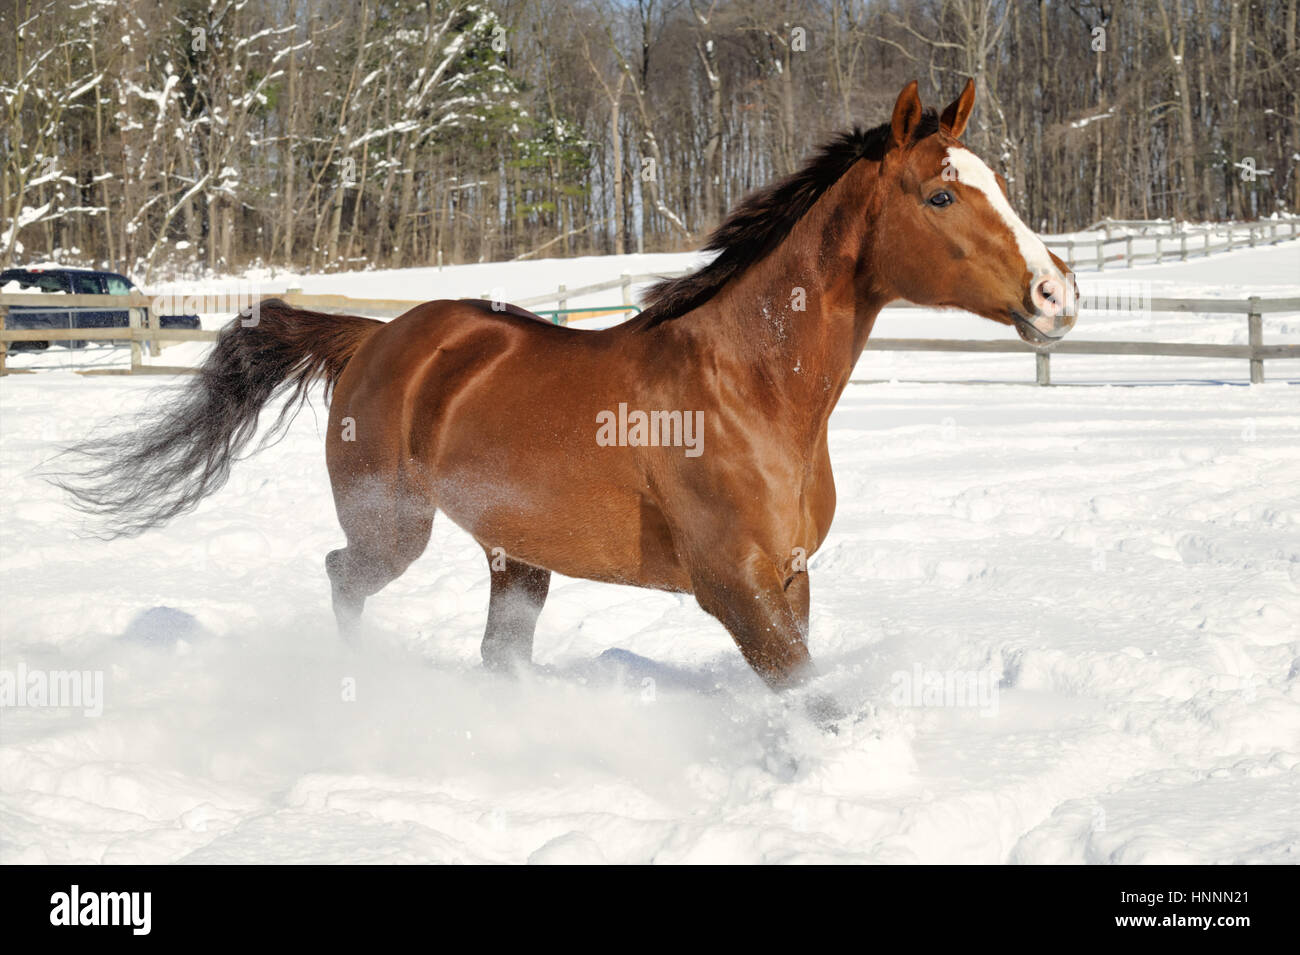 Chestnut Quarter Horse With A White Face And A Black Mane And Tail Stock Photo Alamy